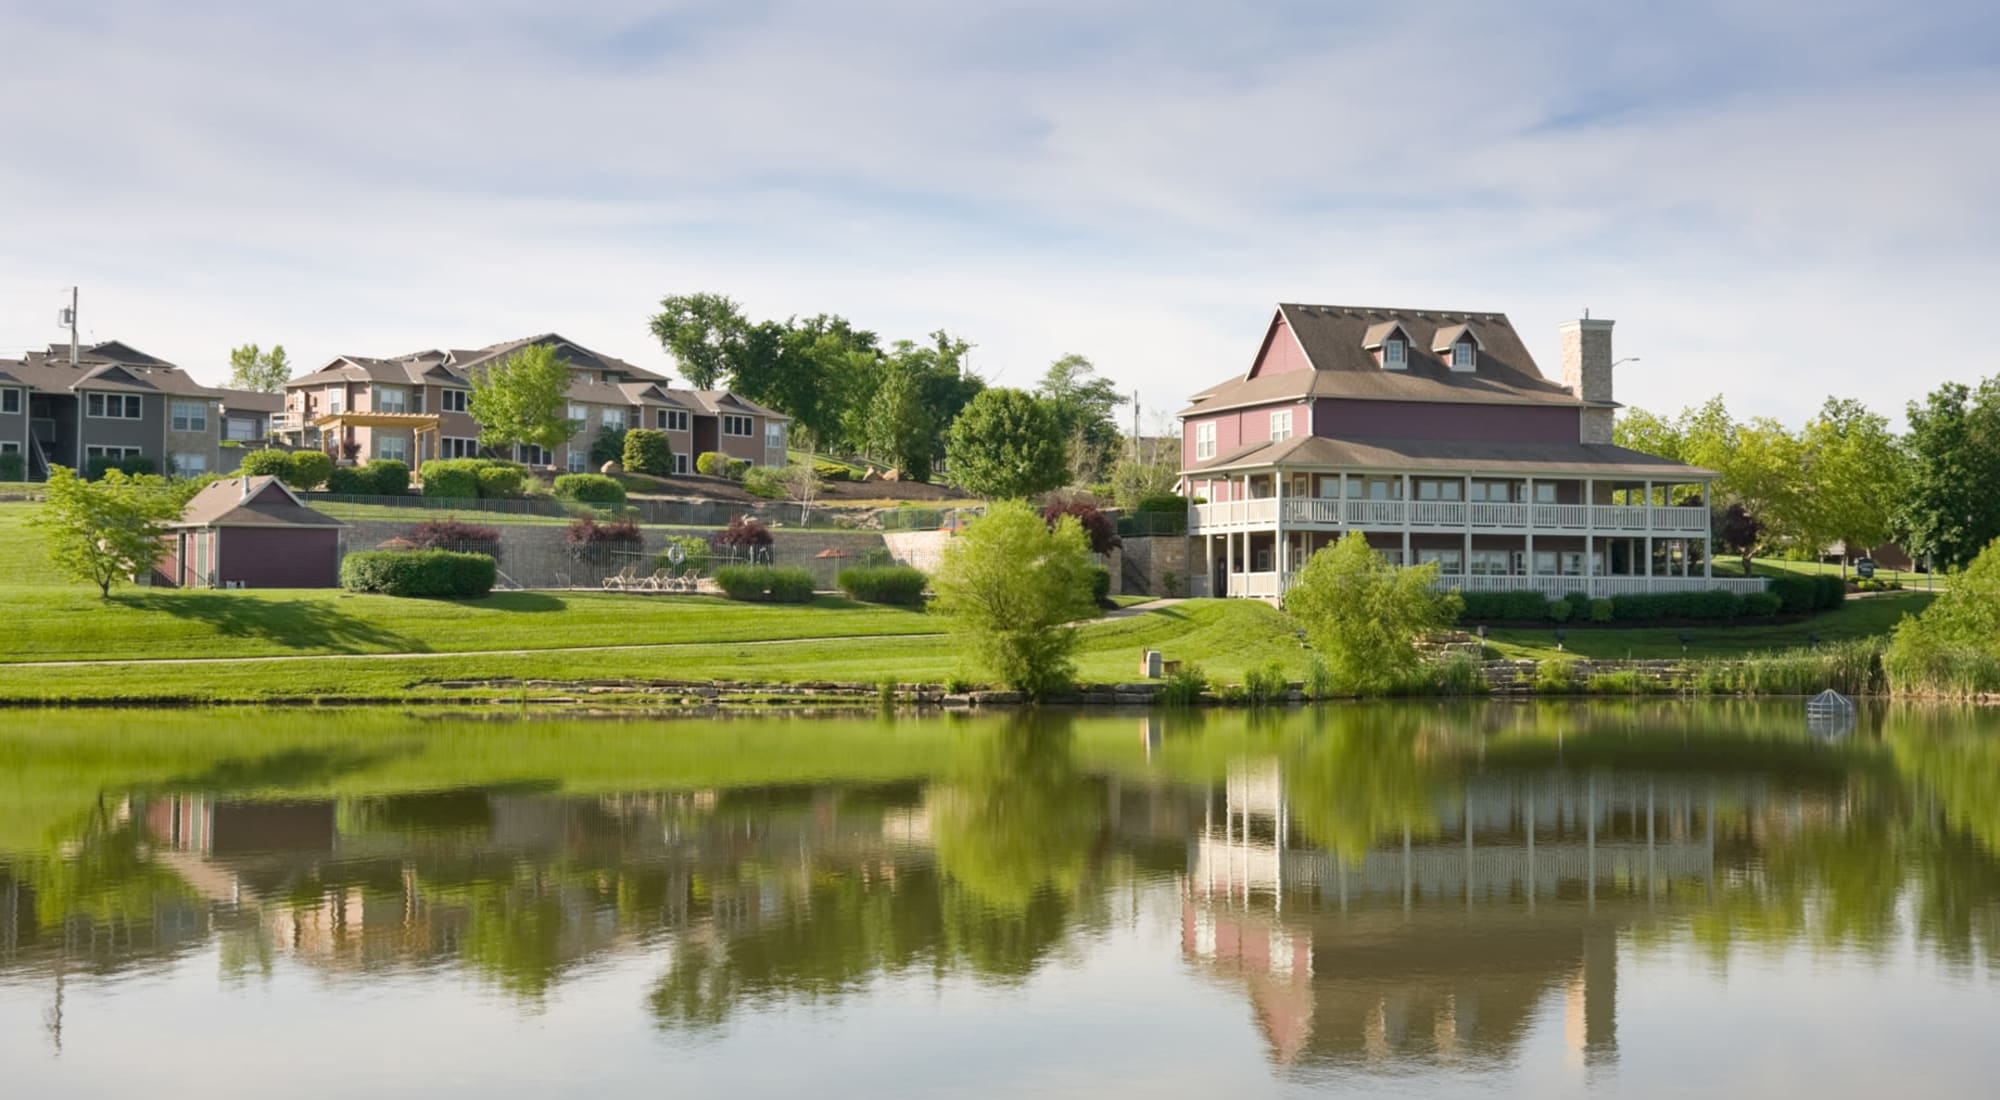 Apply to live at Timber Lakes Apartment Homes in Kansas City, Missouri